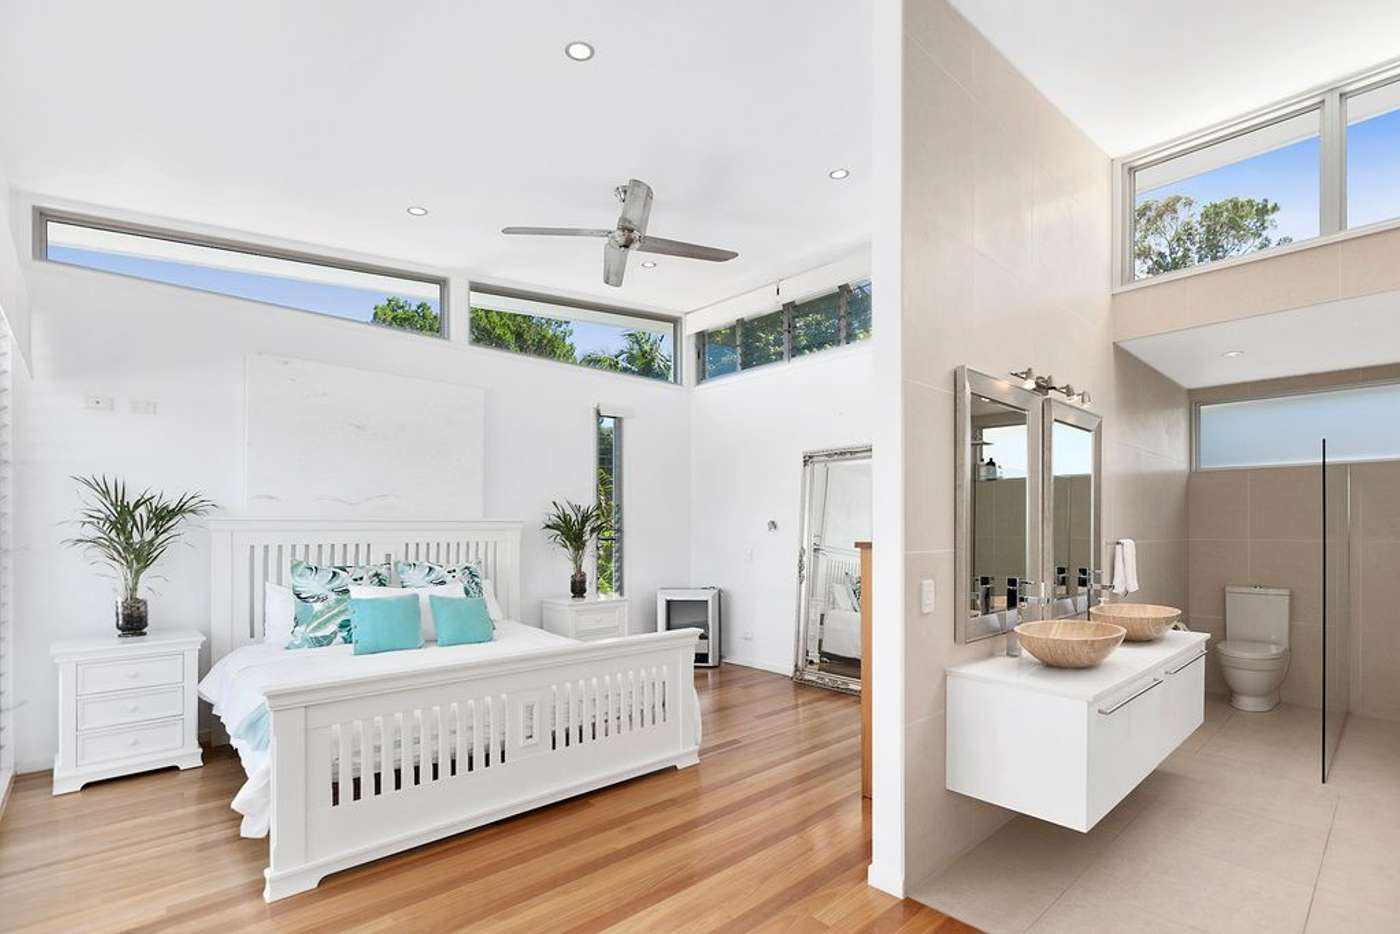 Fifth view of Homely house listing, 19 Nairana Rest, Noosa Heads QLD 4567